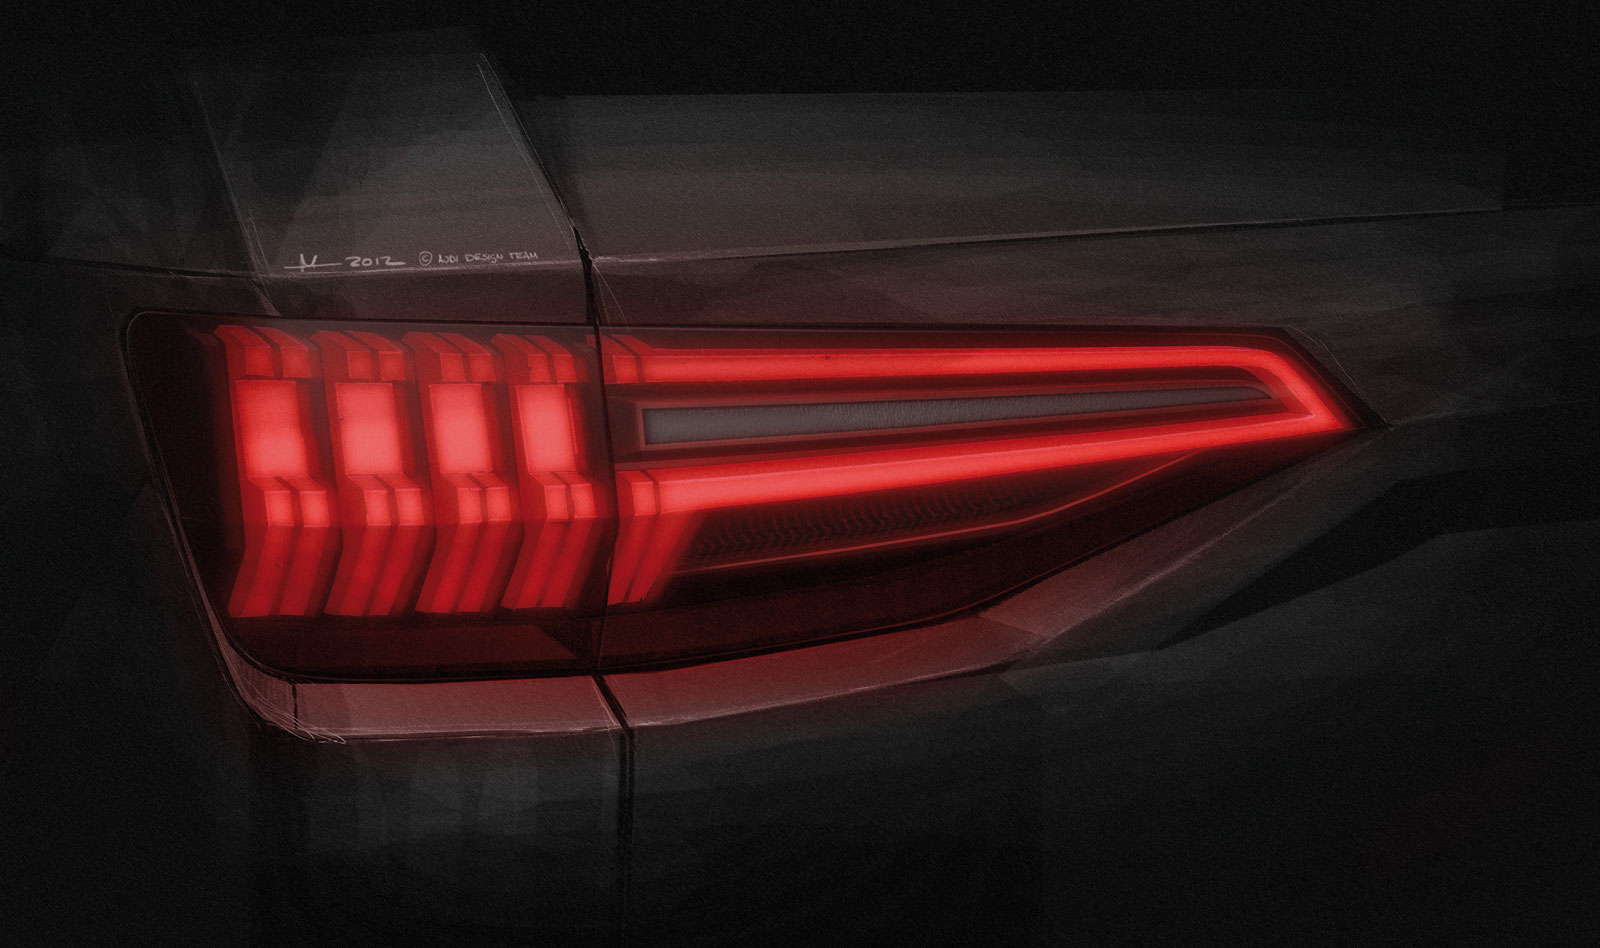 Audi Crosslane Coupe Concept Tail Light Design Sketch